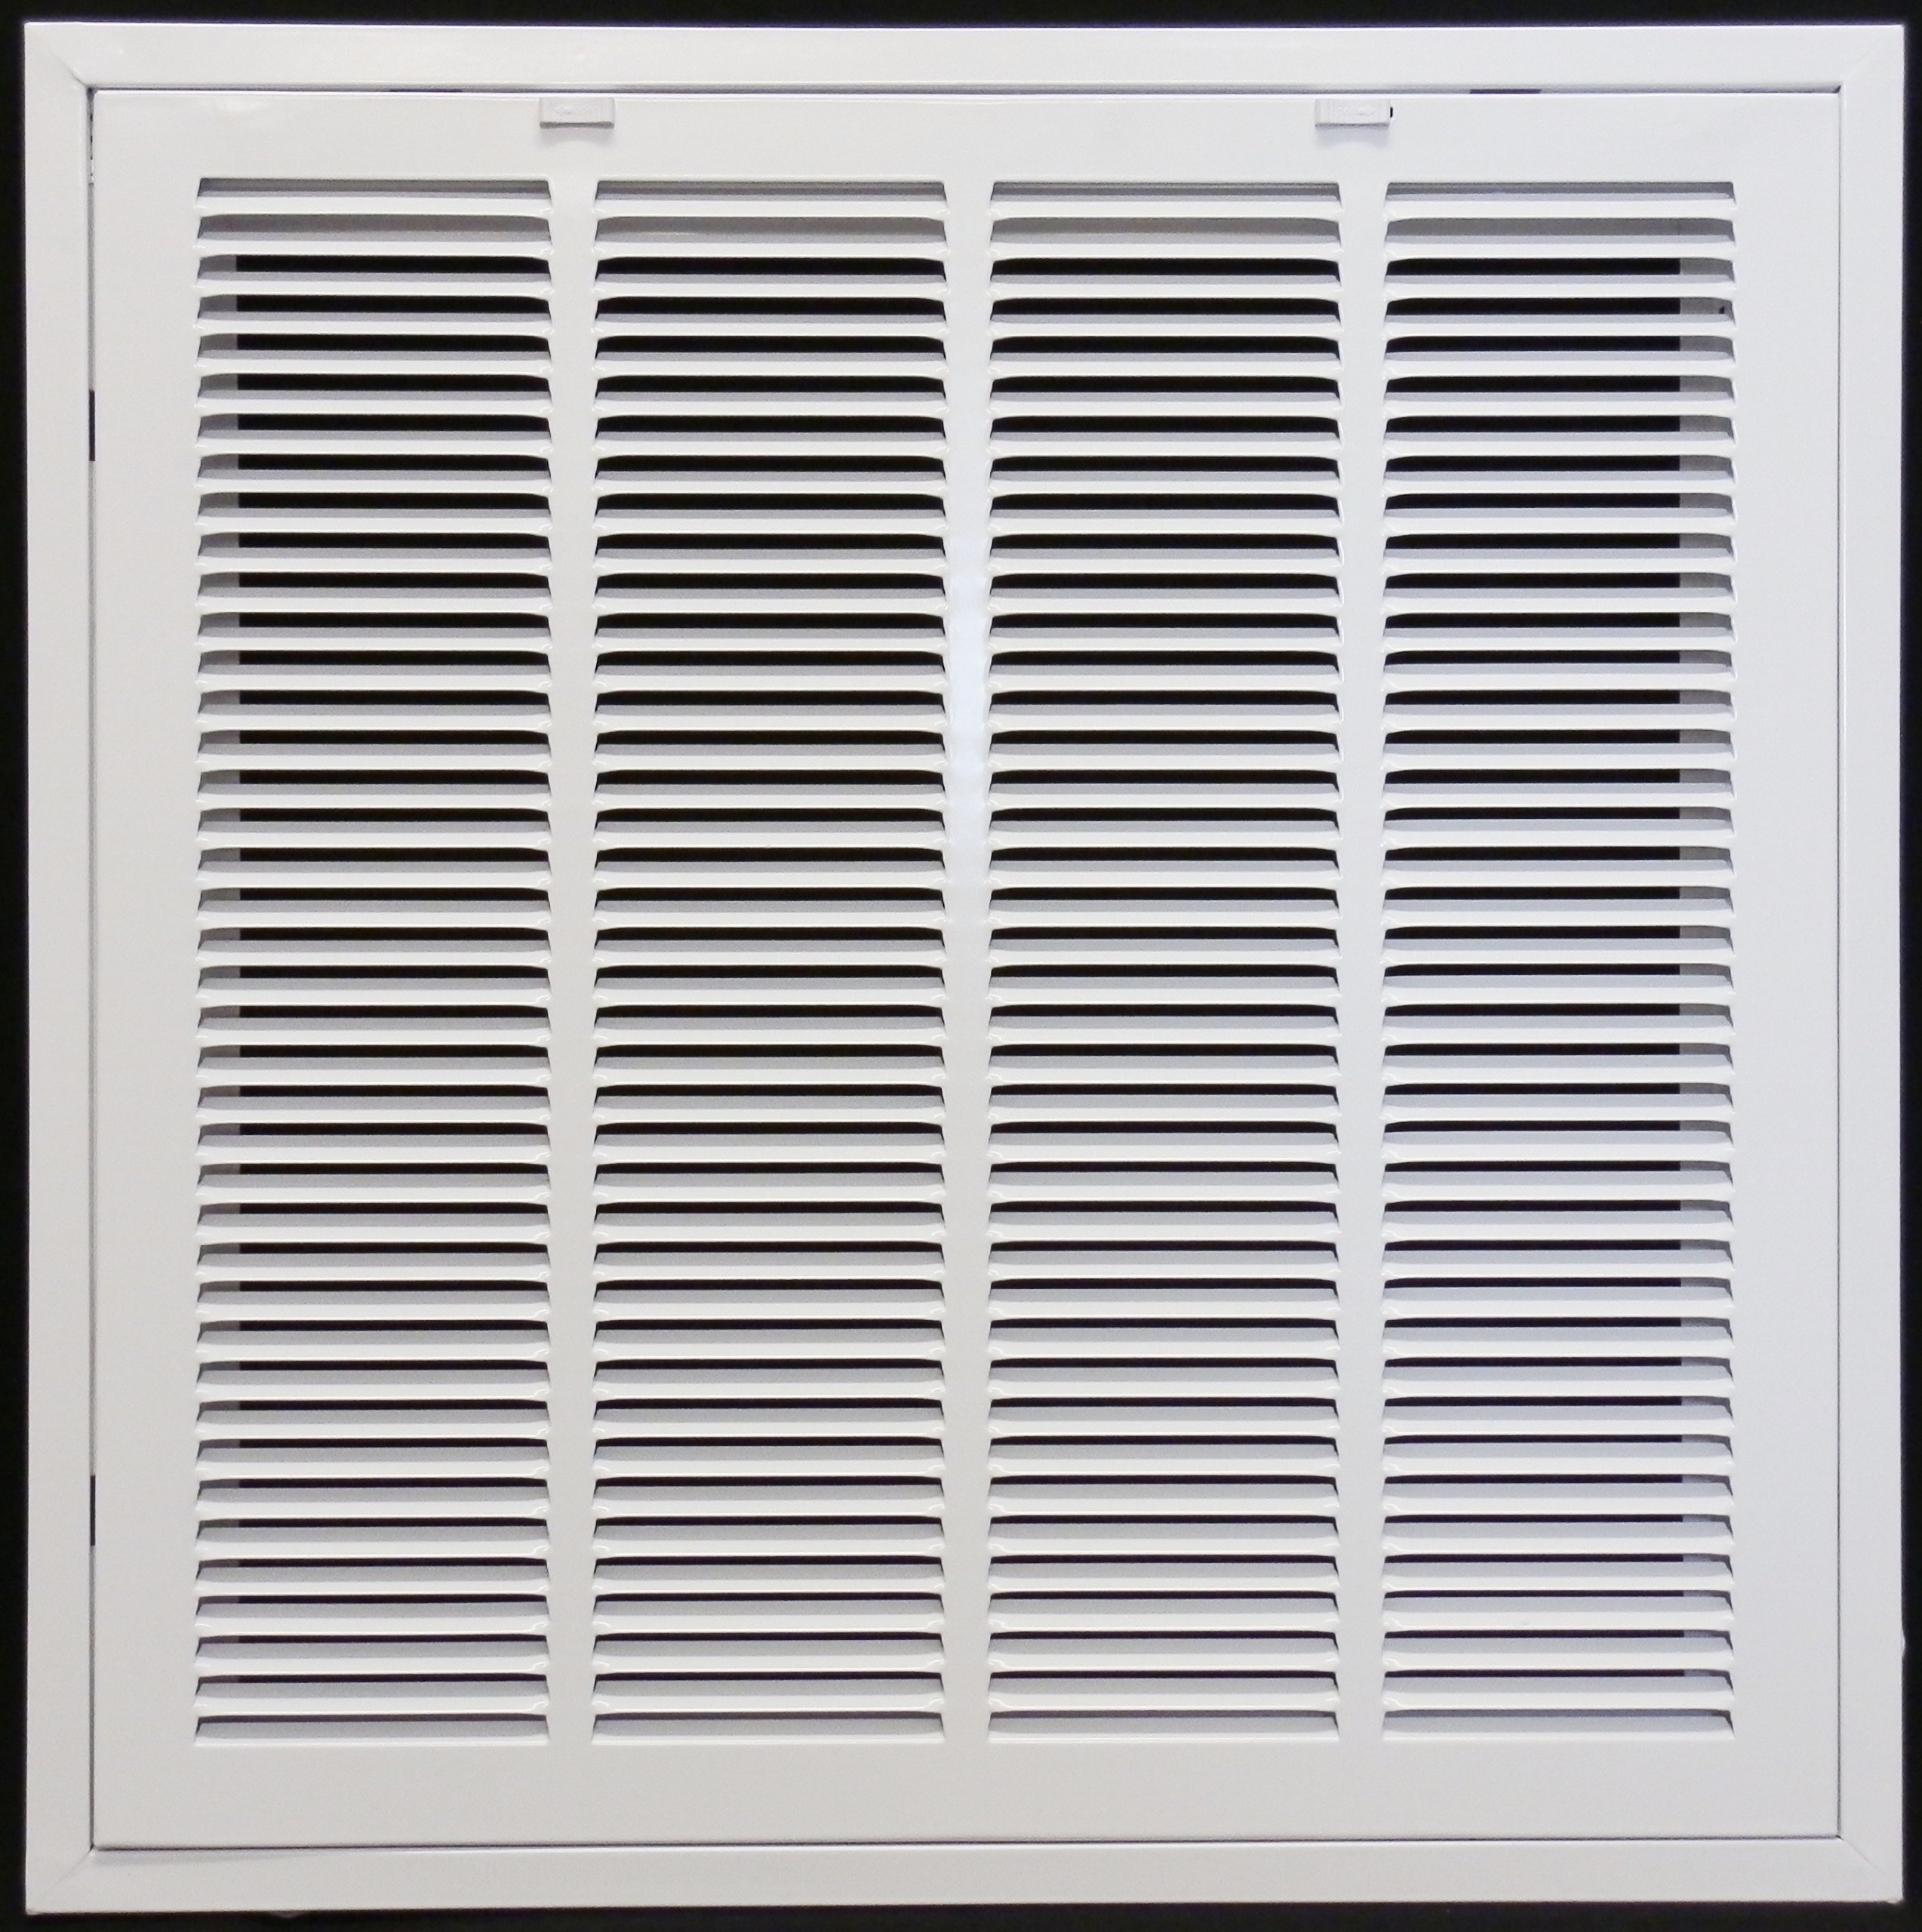 24'' x 24'' RETURN FILTER GRILLE for Drop Ceiling - Uses 20'' x 20'' Filter - Easy Access Door & Latch To Filter